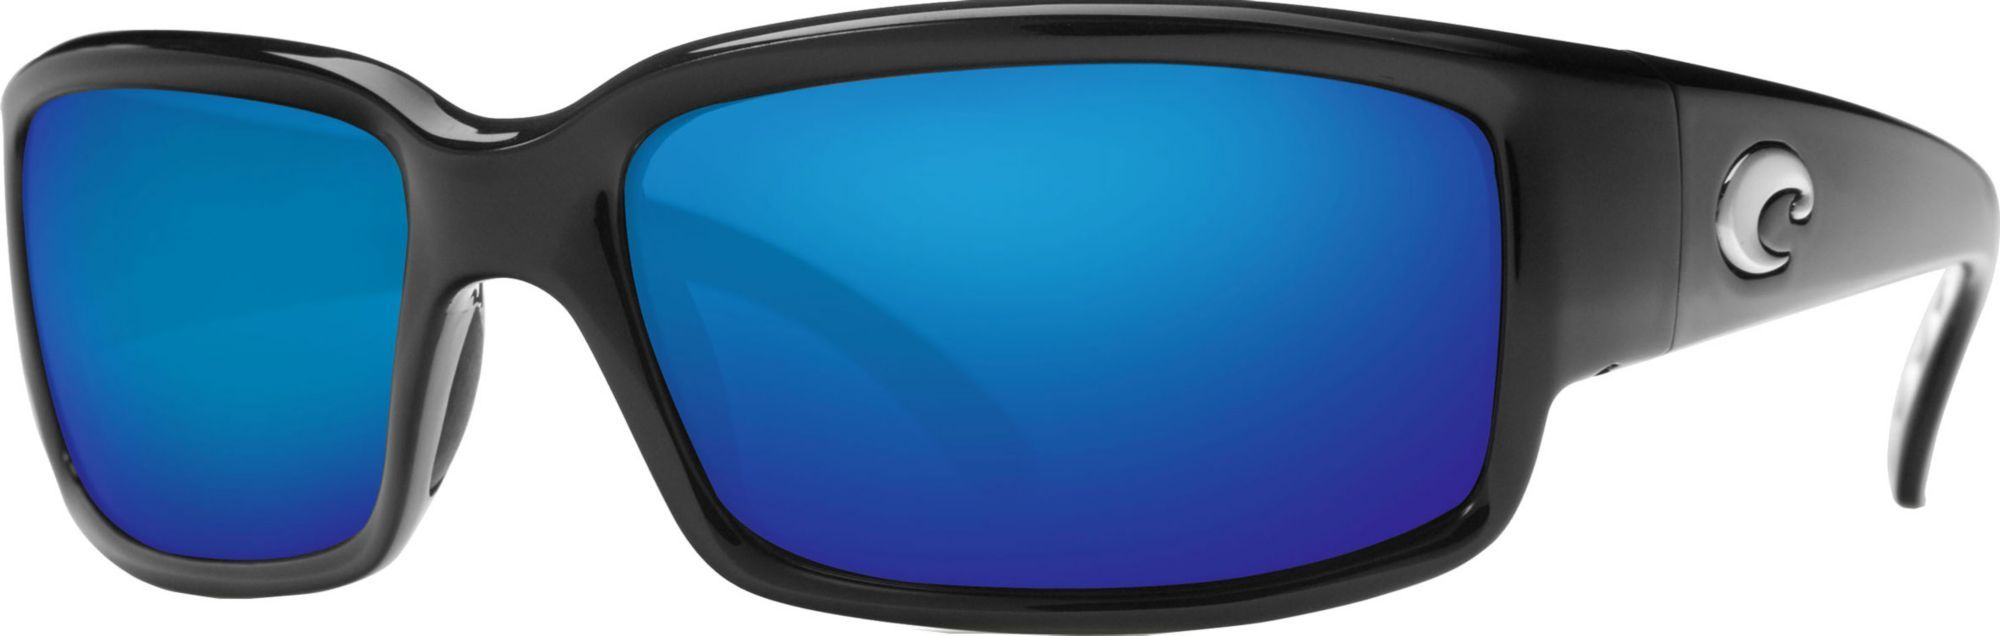 Costa Del Mar Caballito 580P Polarized Sunglasses, Black Blue Mirror ... 9e33398f9133